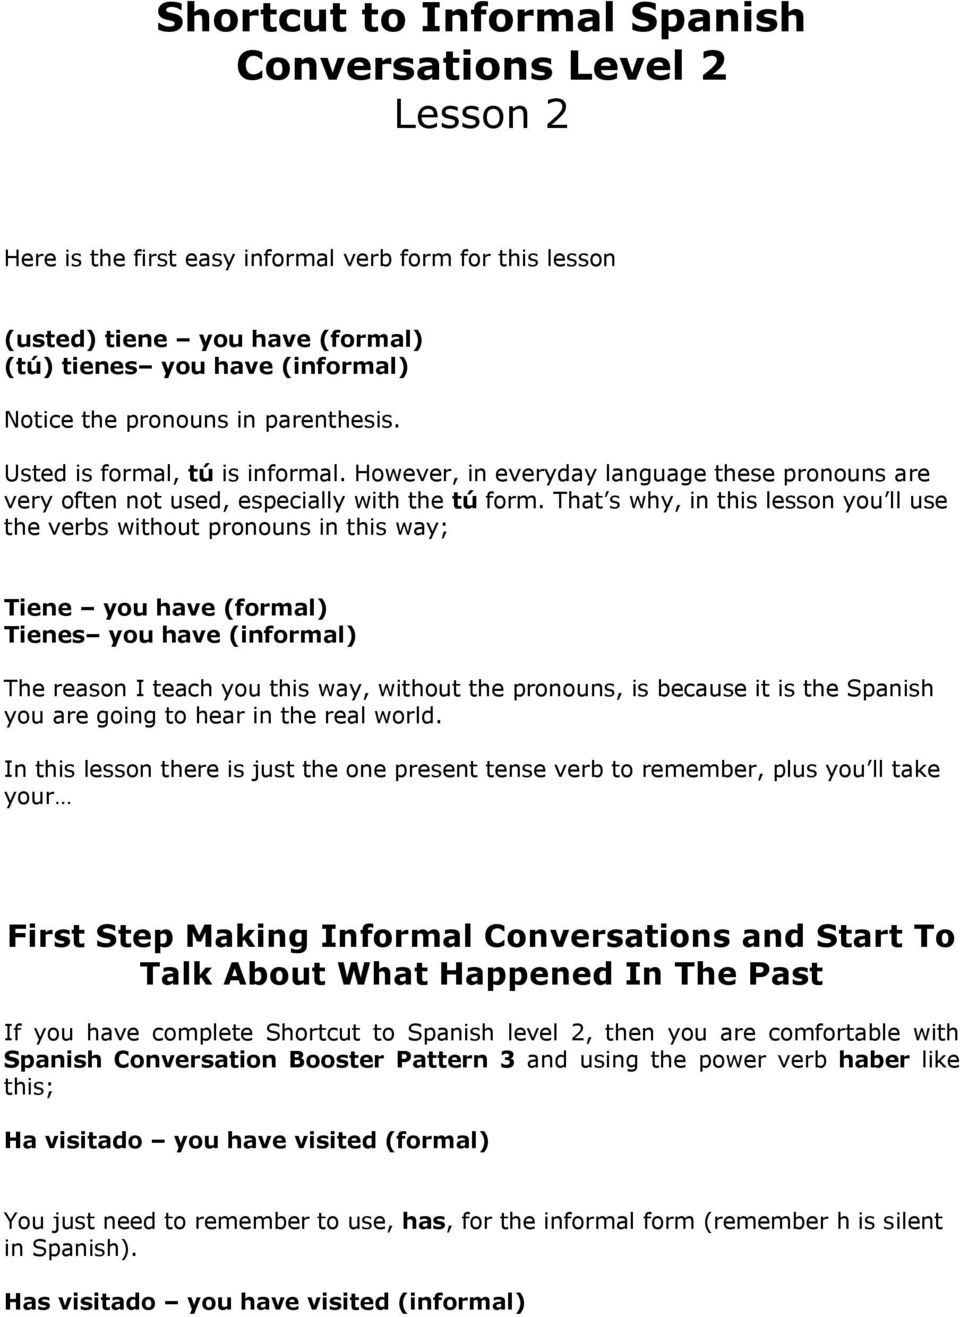 Shortcut to Informal Spanish Conversations Level 2 Lesson 1